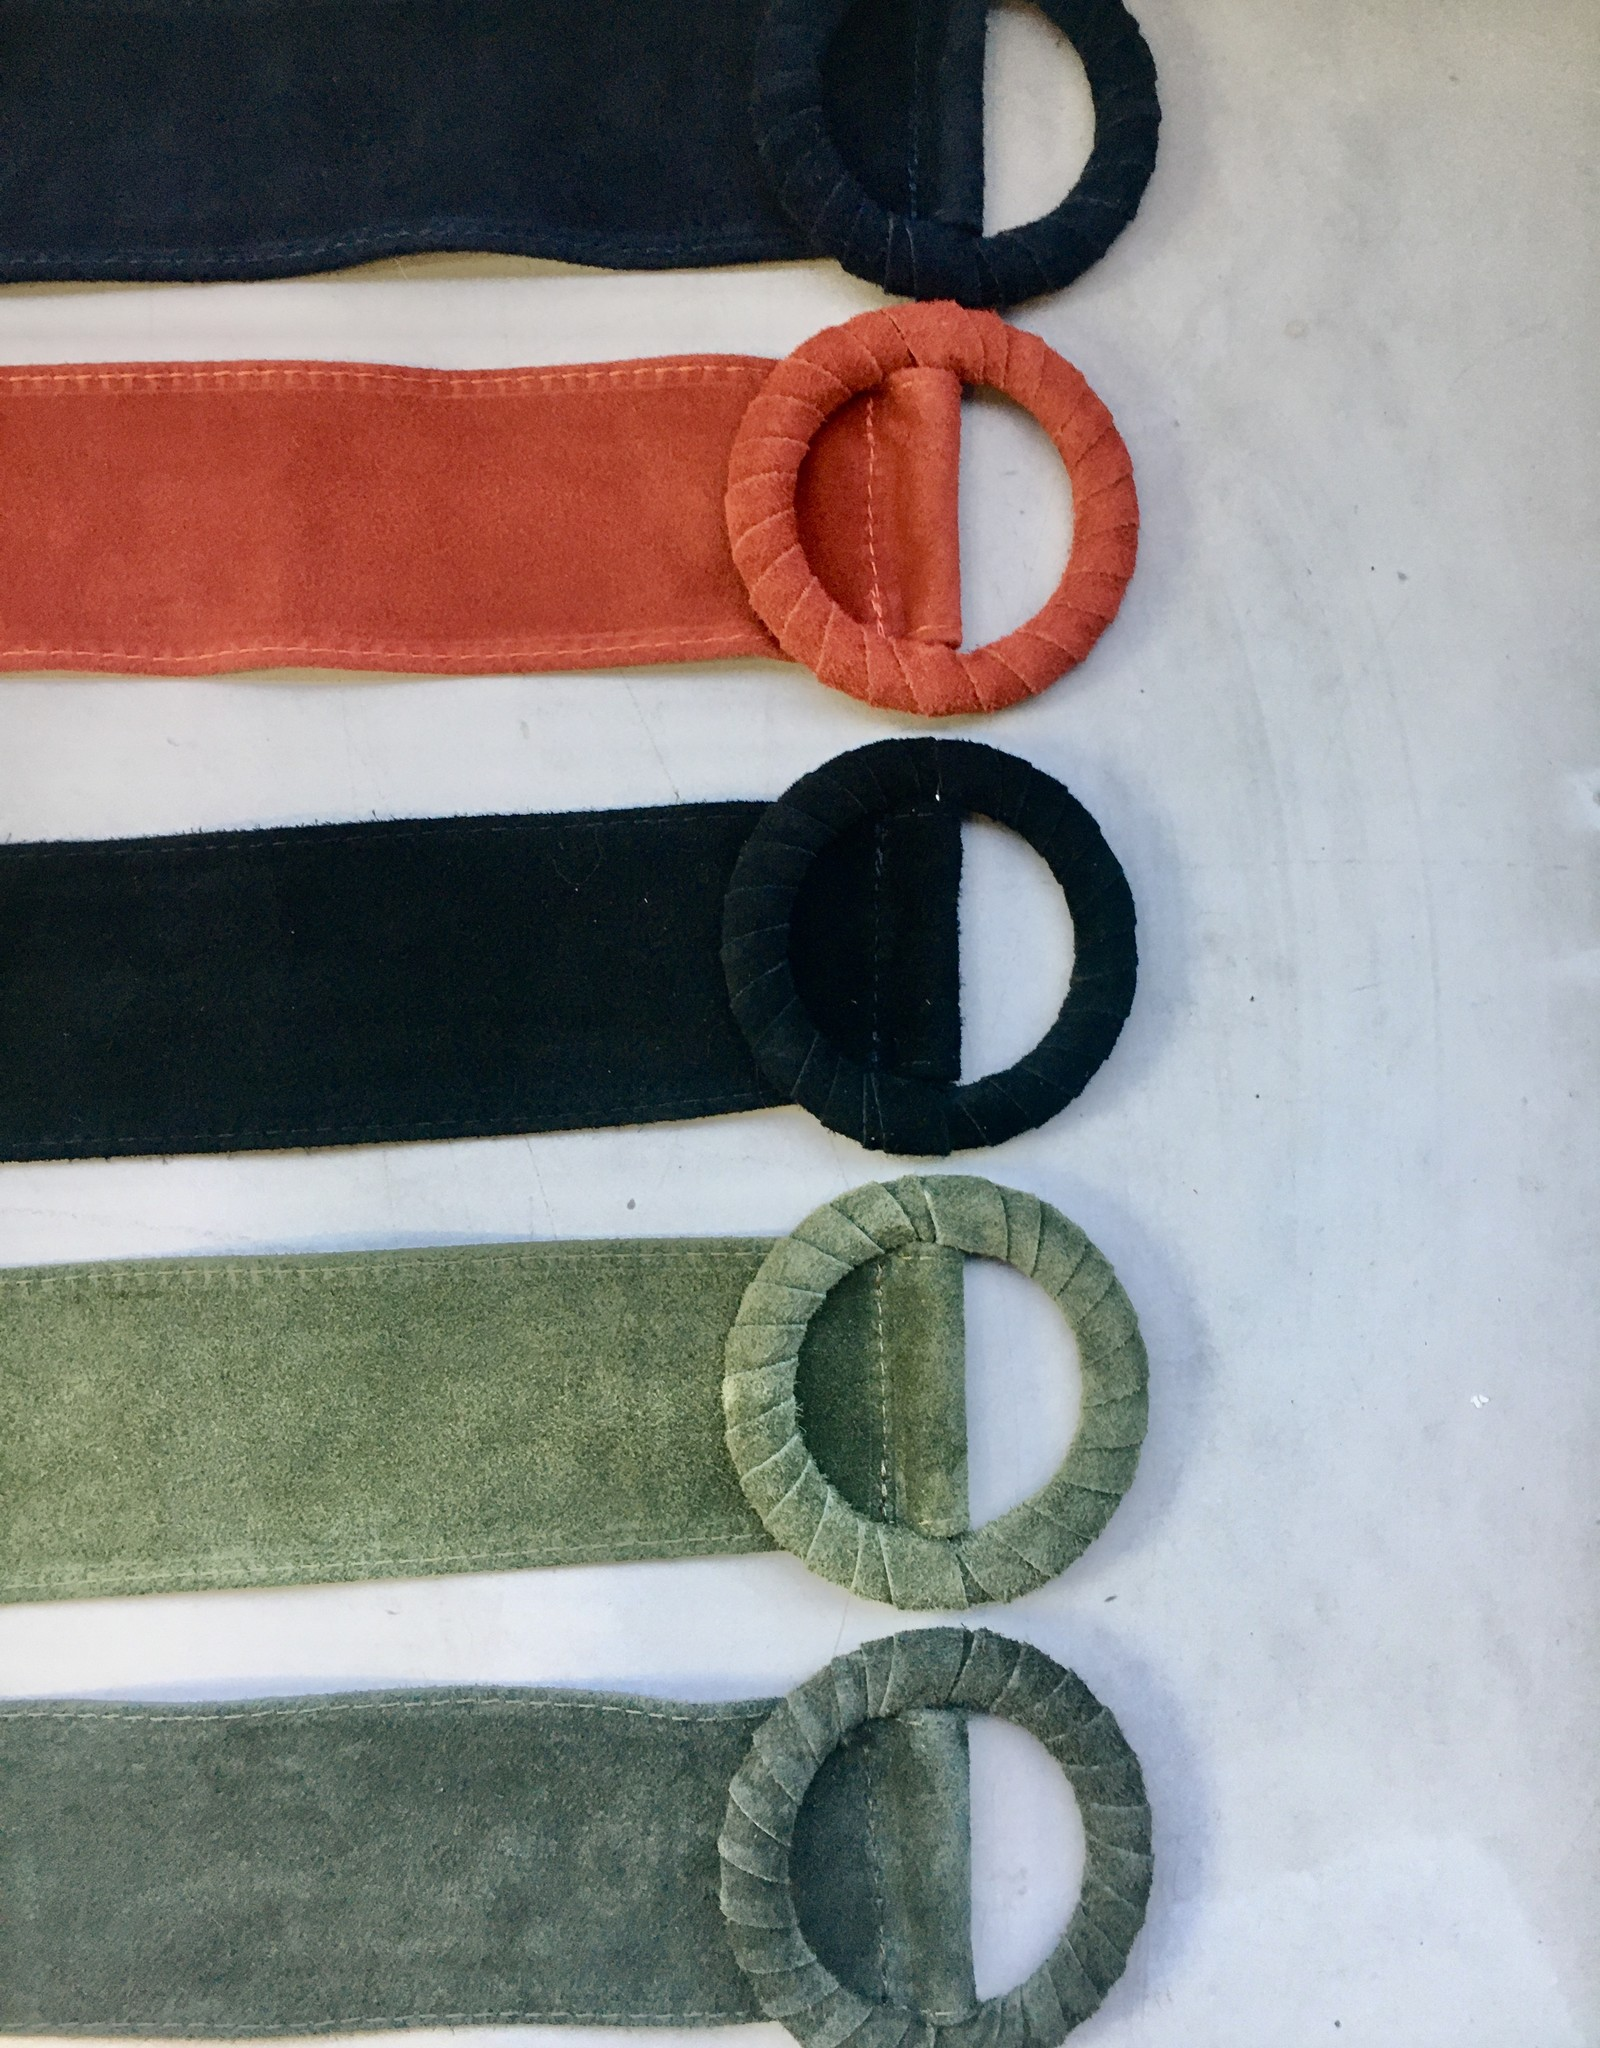 Giuliano Wide buckskin leather belt with buckle, different colors